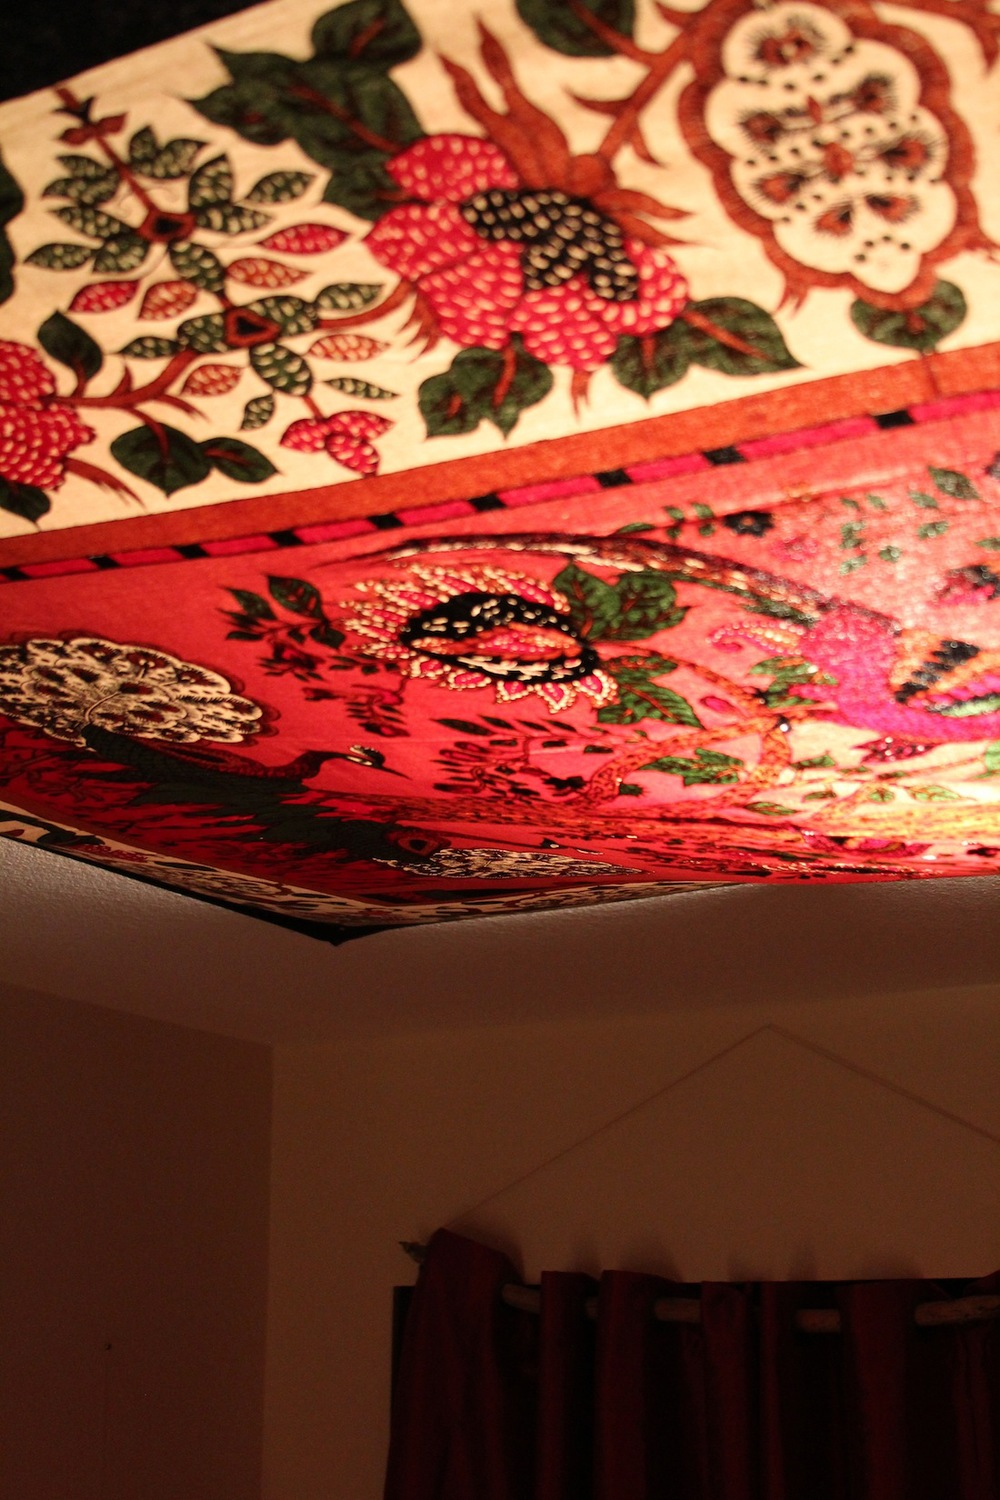 A tree of life tapestry hangs over a too-bright-on-it's-own-light, creating a warm + soft, red glow